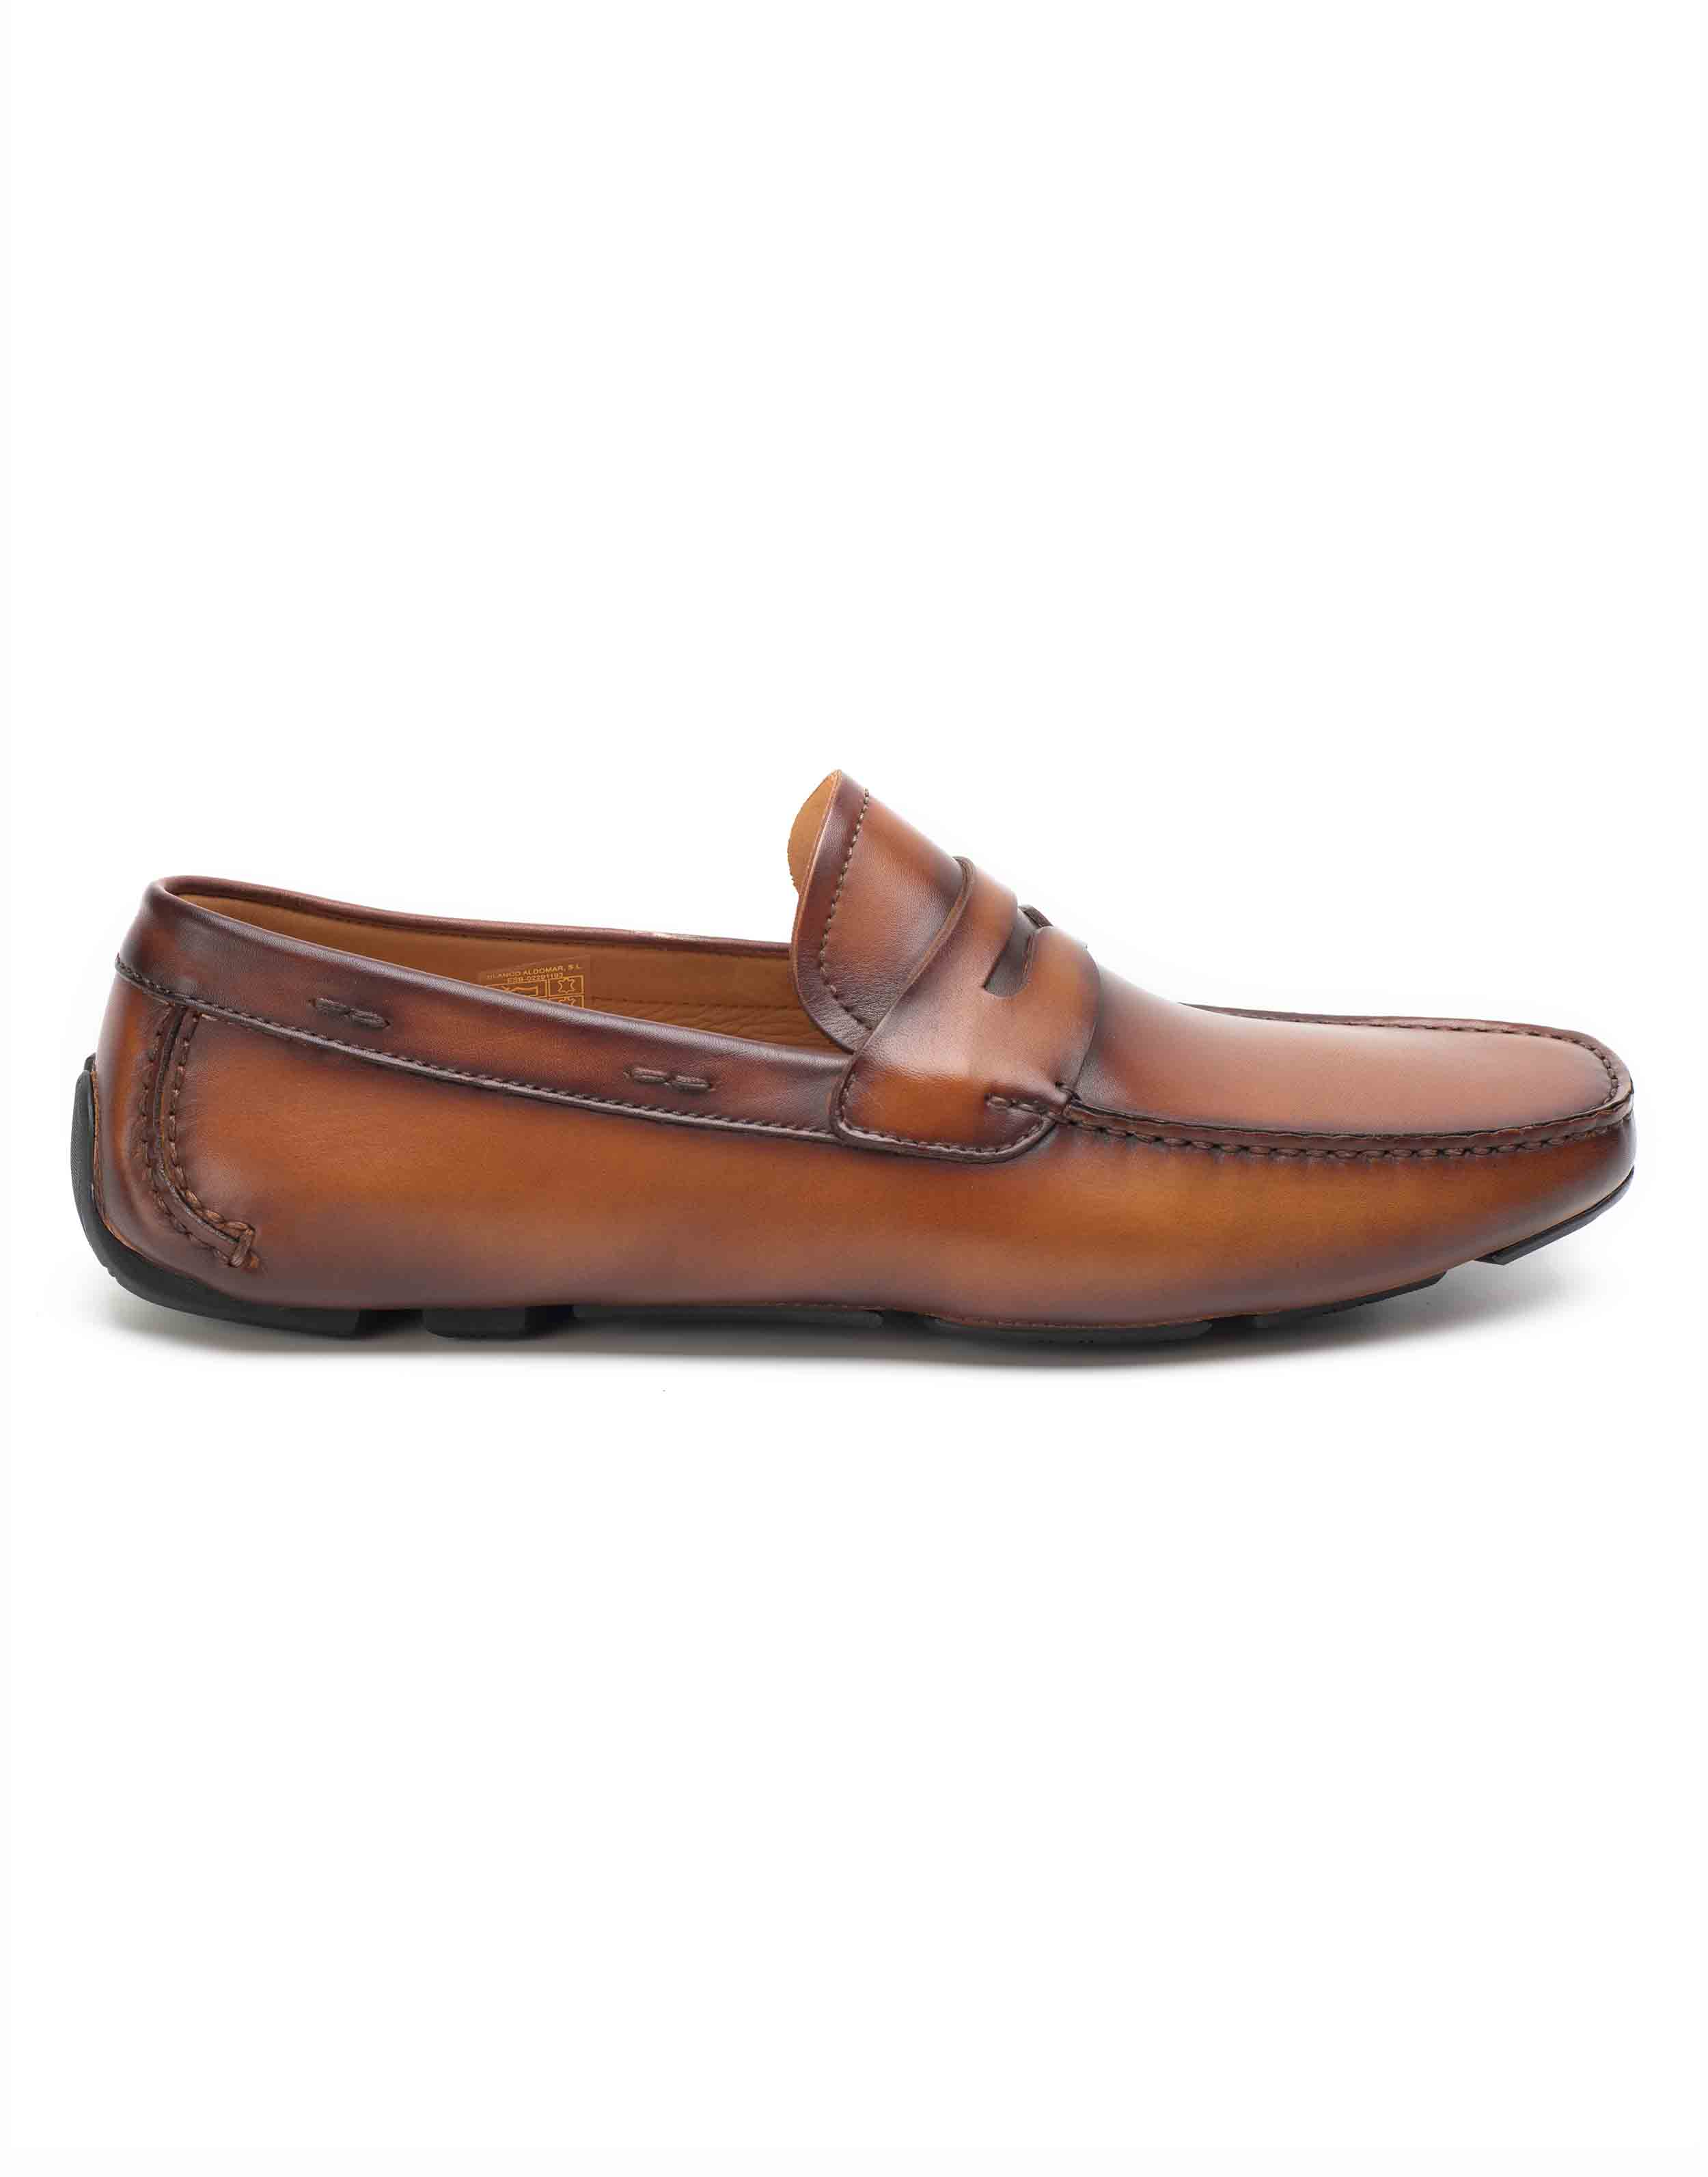 HAZEL TONED DRIVING MOCCASSIN1